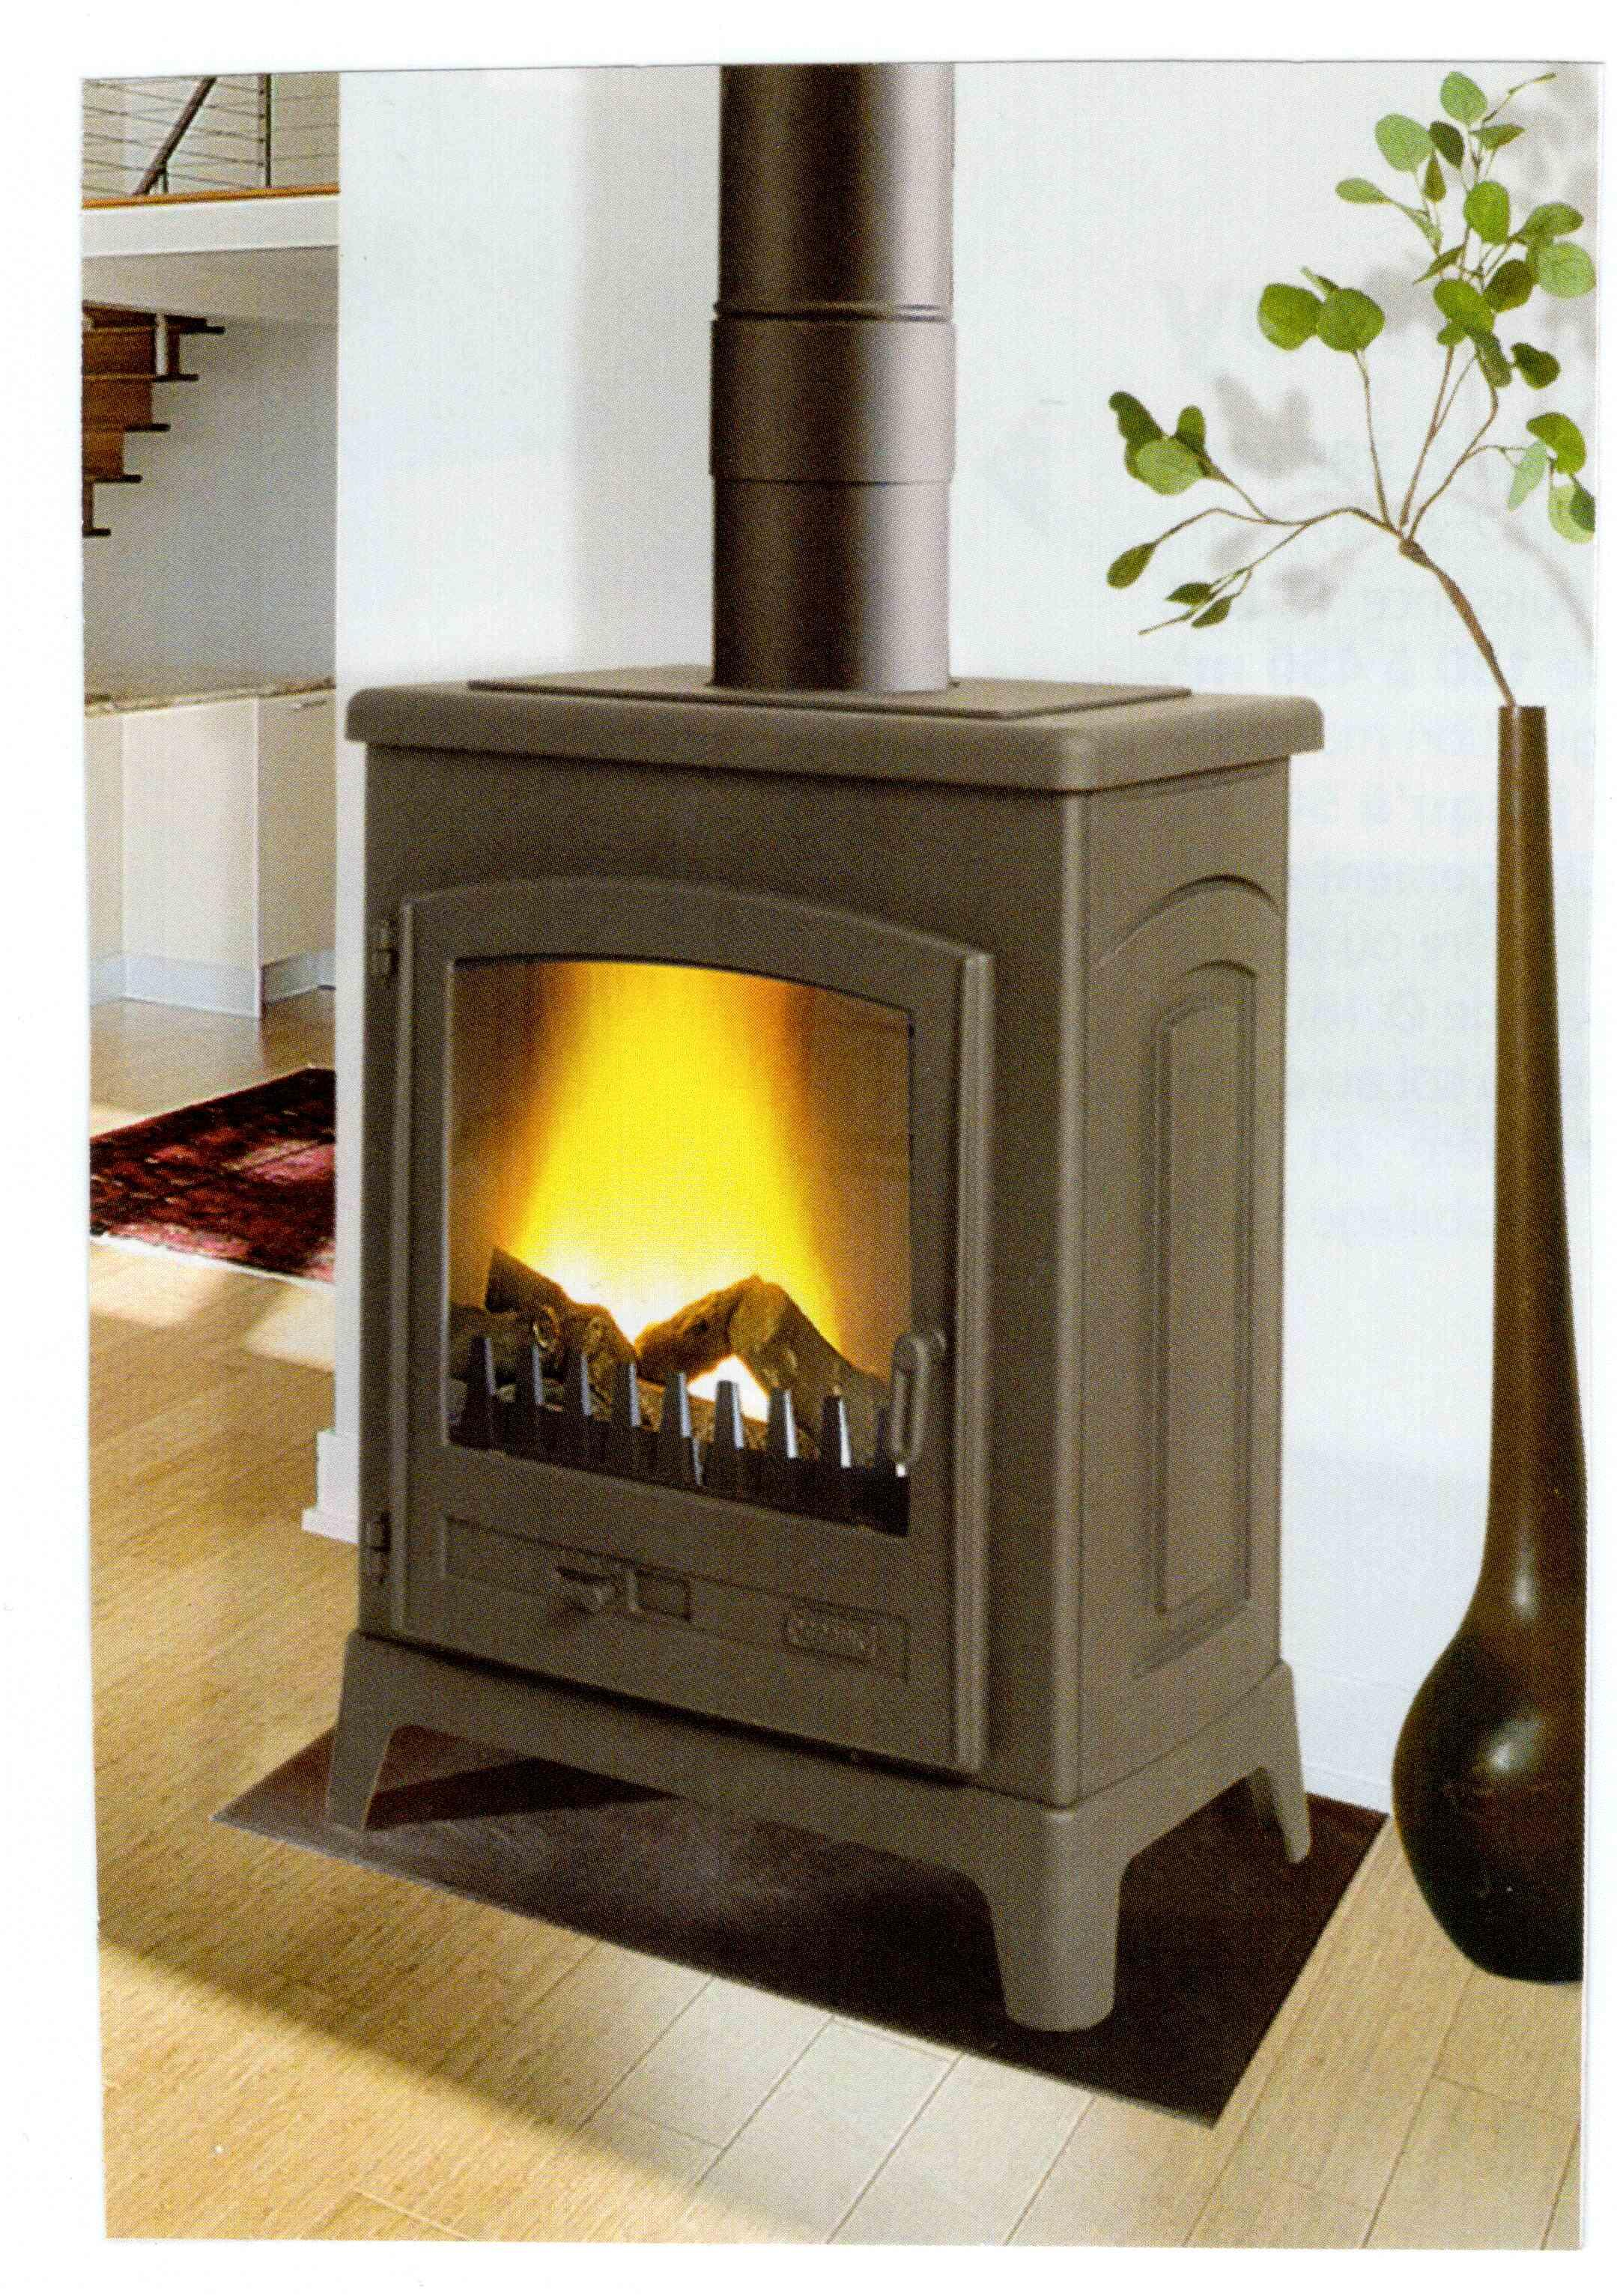 Godin 389144 Le Fontemont Woodburning Fireplace